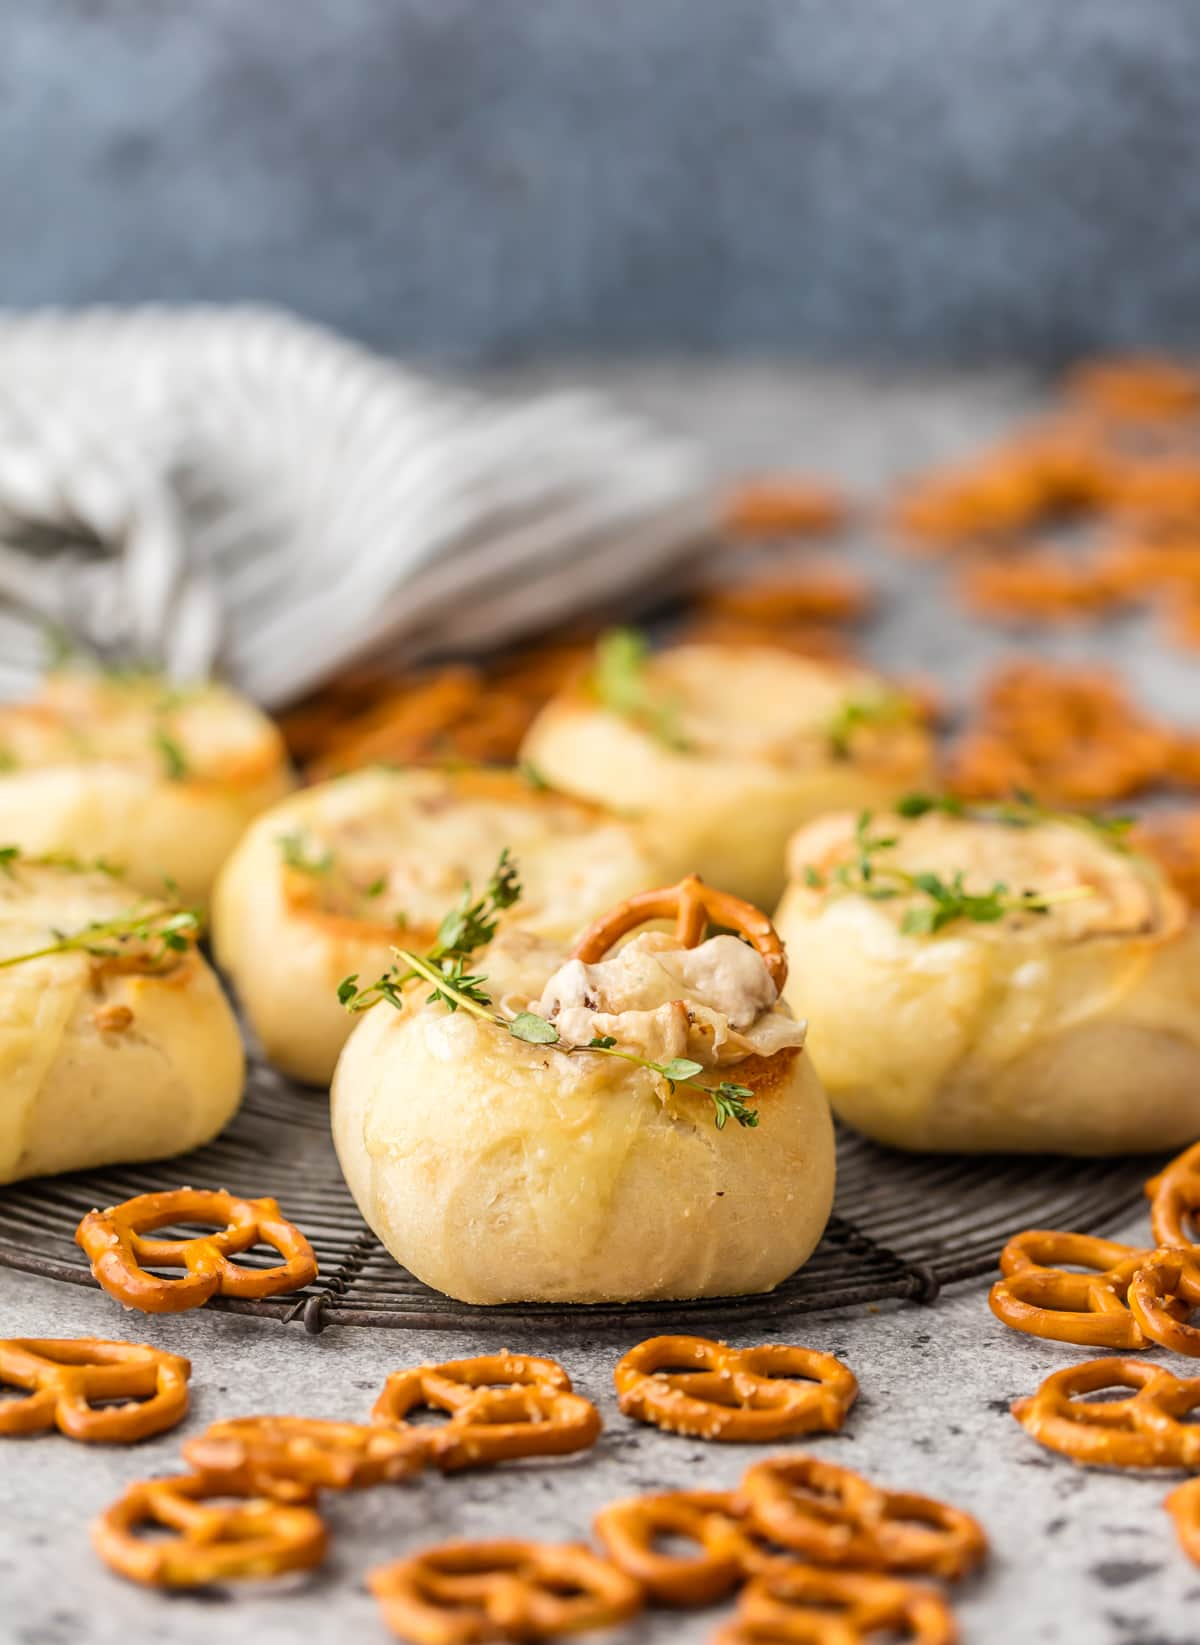 These MINI FRENCH ONION DIP BREAD BOWLS are the perfect cute and DELICIOUS appetizer for the Super Bowl! Wow your party guests with French Onion Dip inside mini bread bowls and topped with melty swiss. BEST DIP EVER!